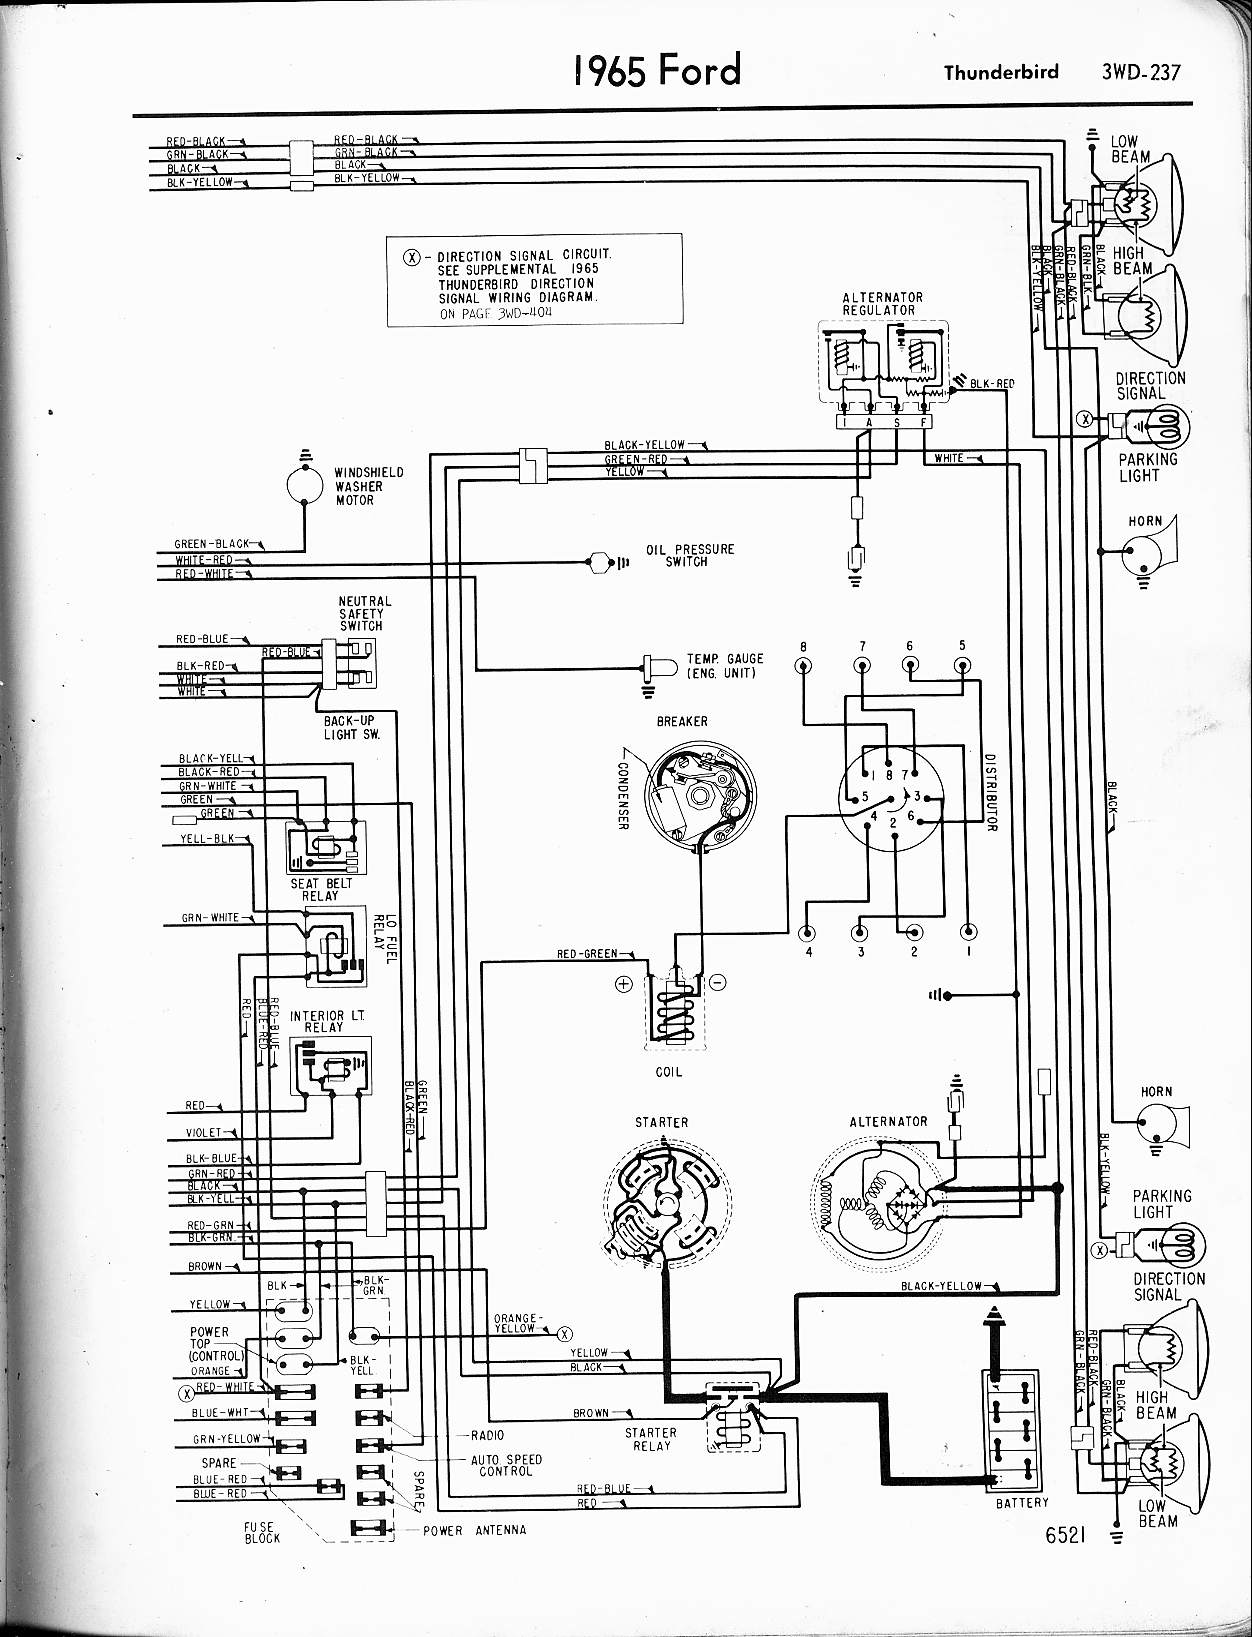 MWire5765 237 57 65 ford wiring diagrams Ford E 350 Wiring Diagrams at panicattacktreatment.co